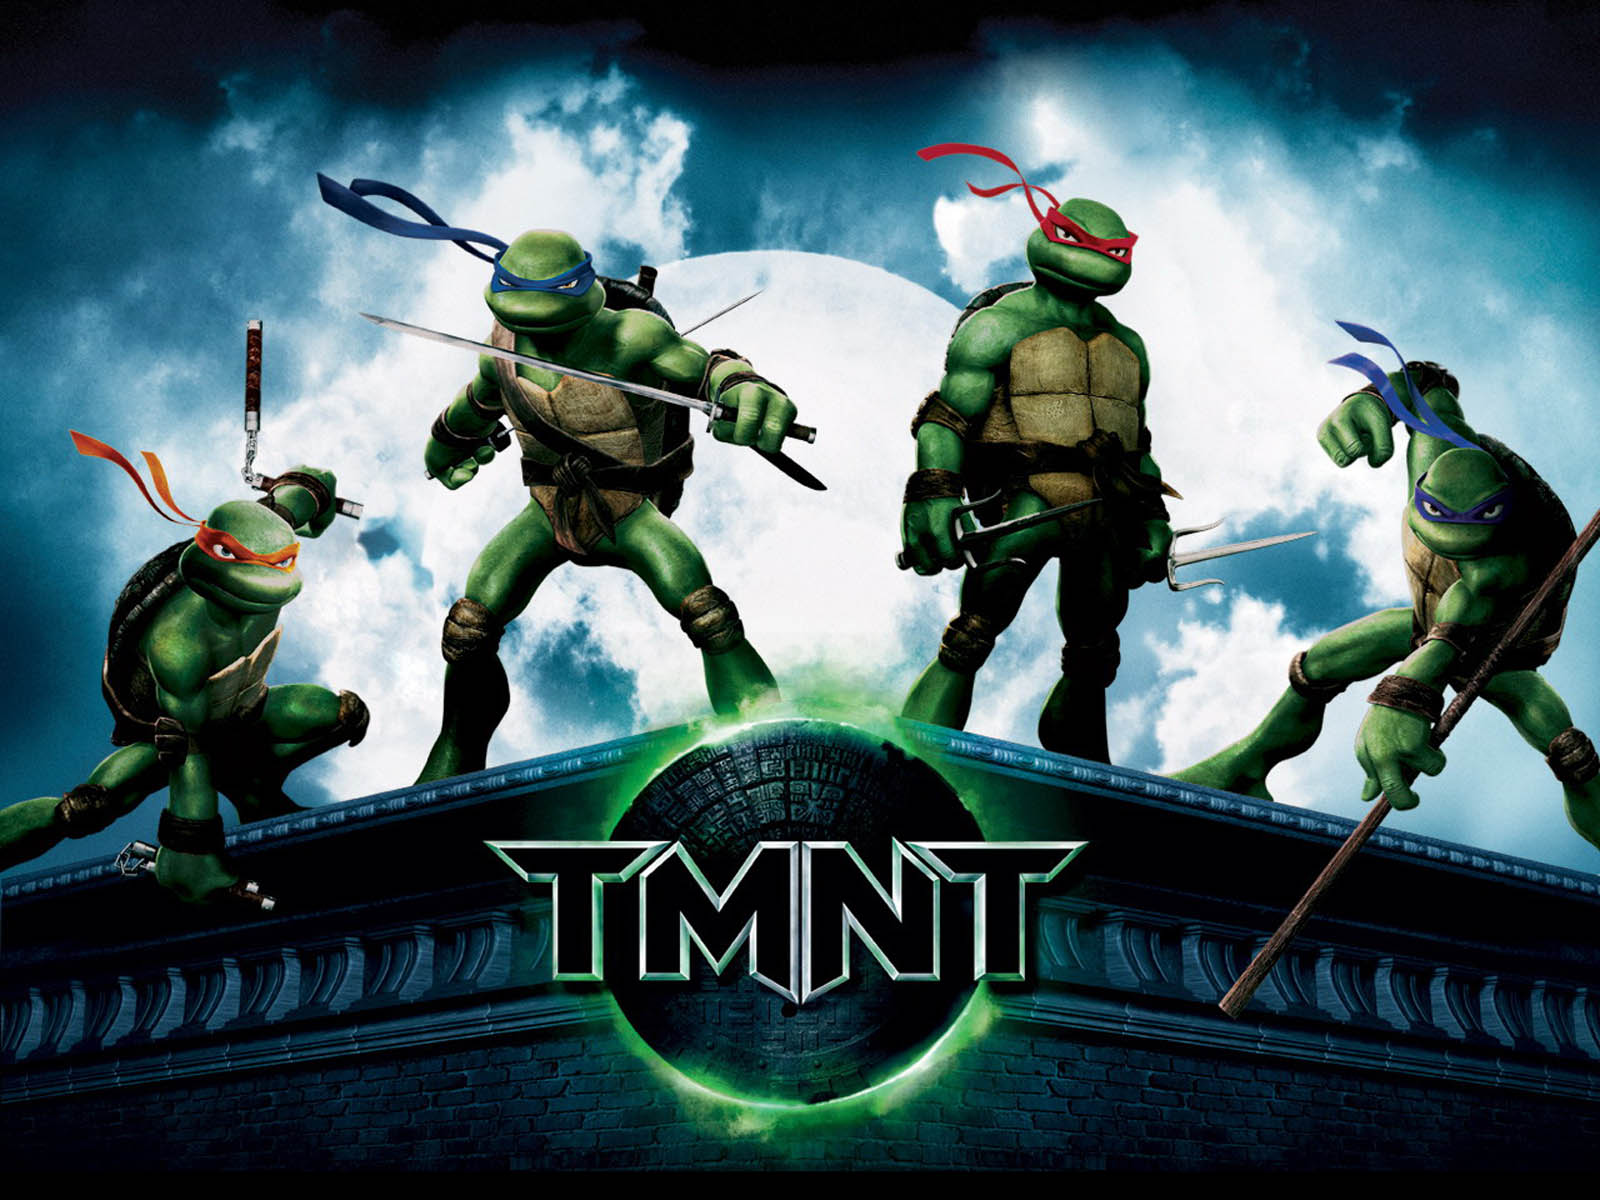 Teenage Mutant Ninja Turtles TMNT